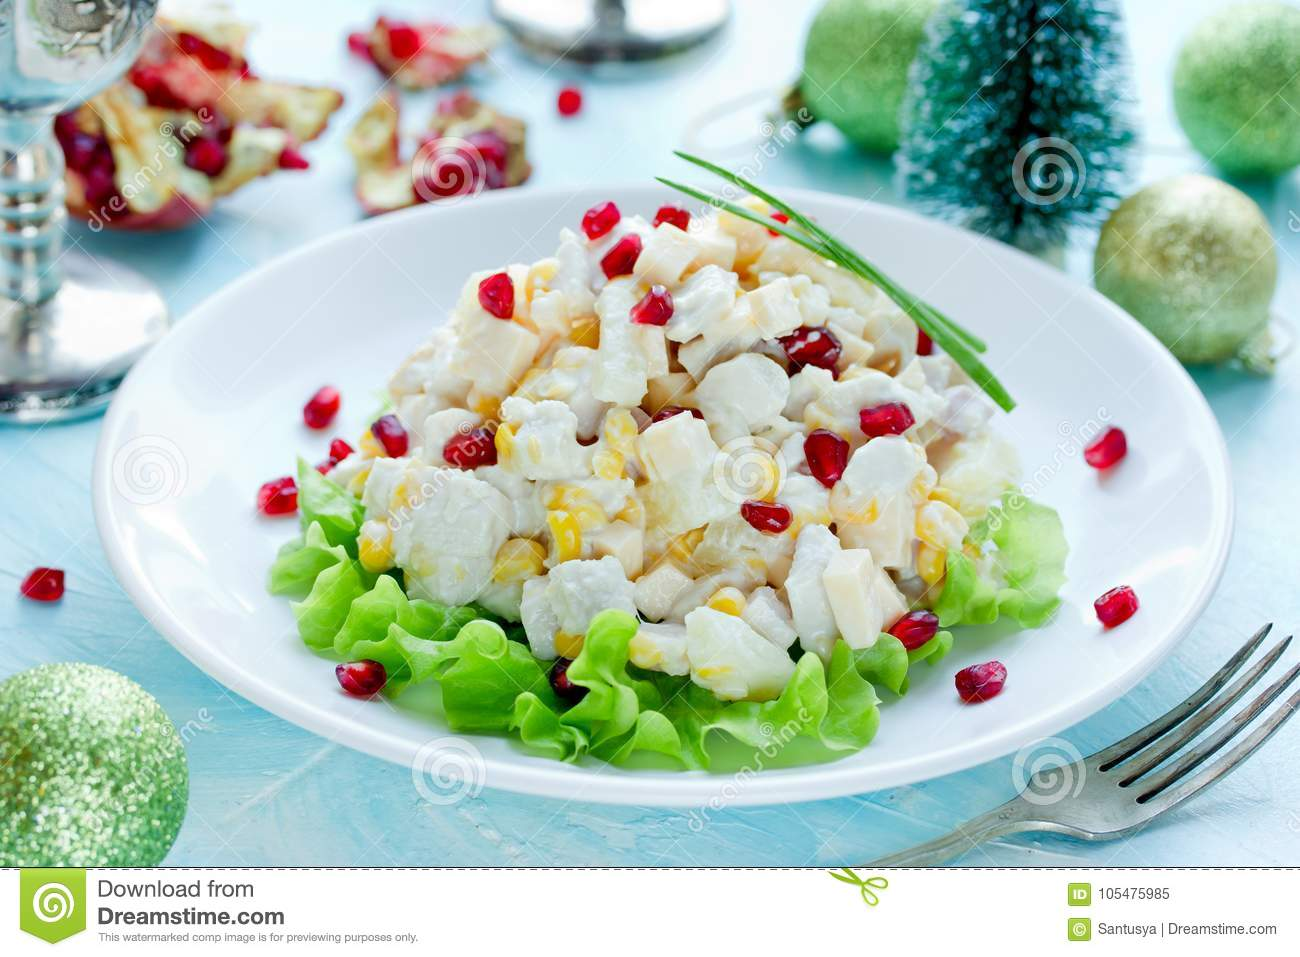 Very tasty salad with pineapple and cheese and chicken